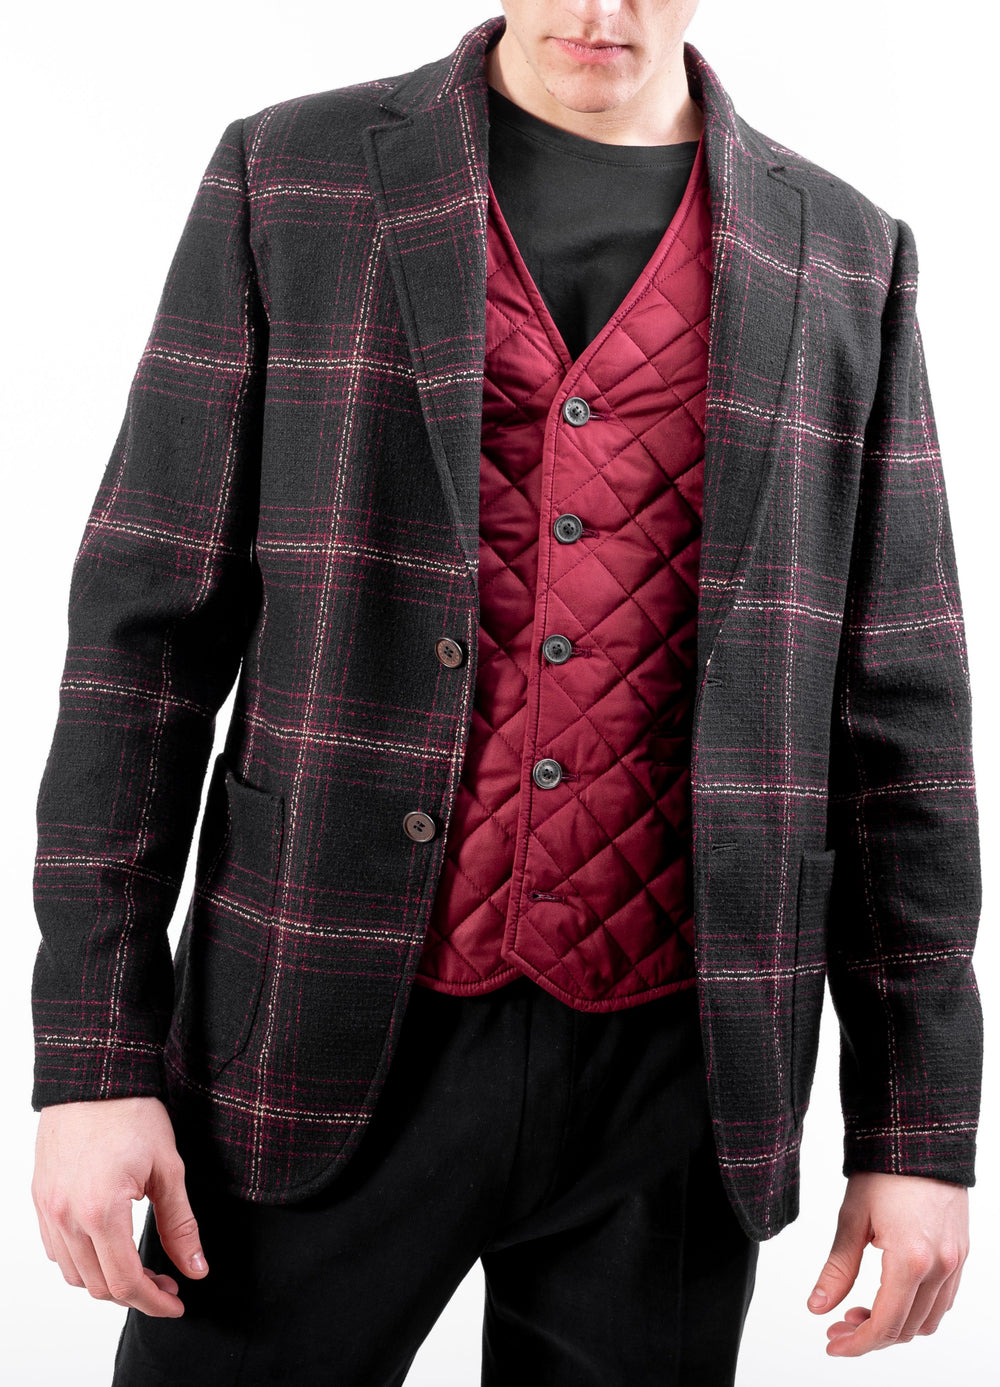 Gilet monopetto bordeaux